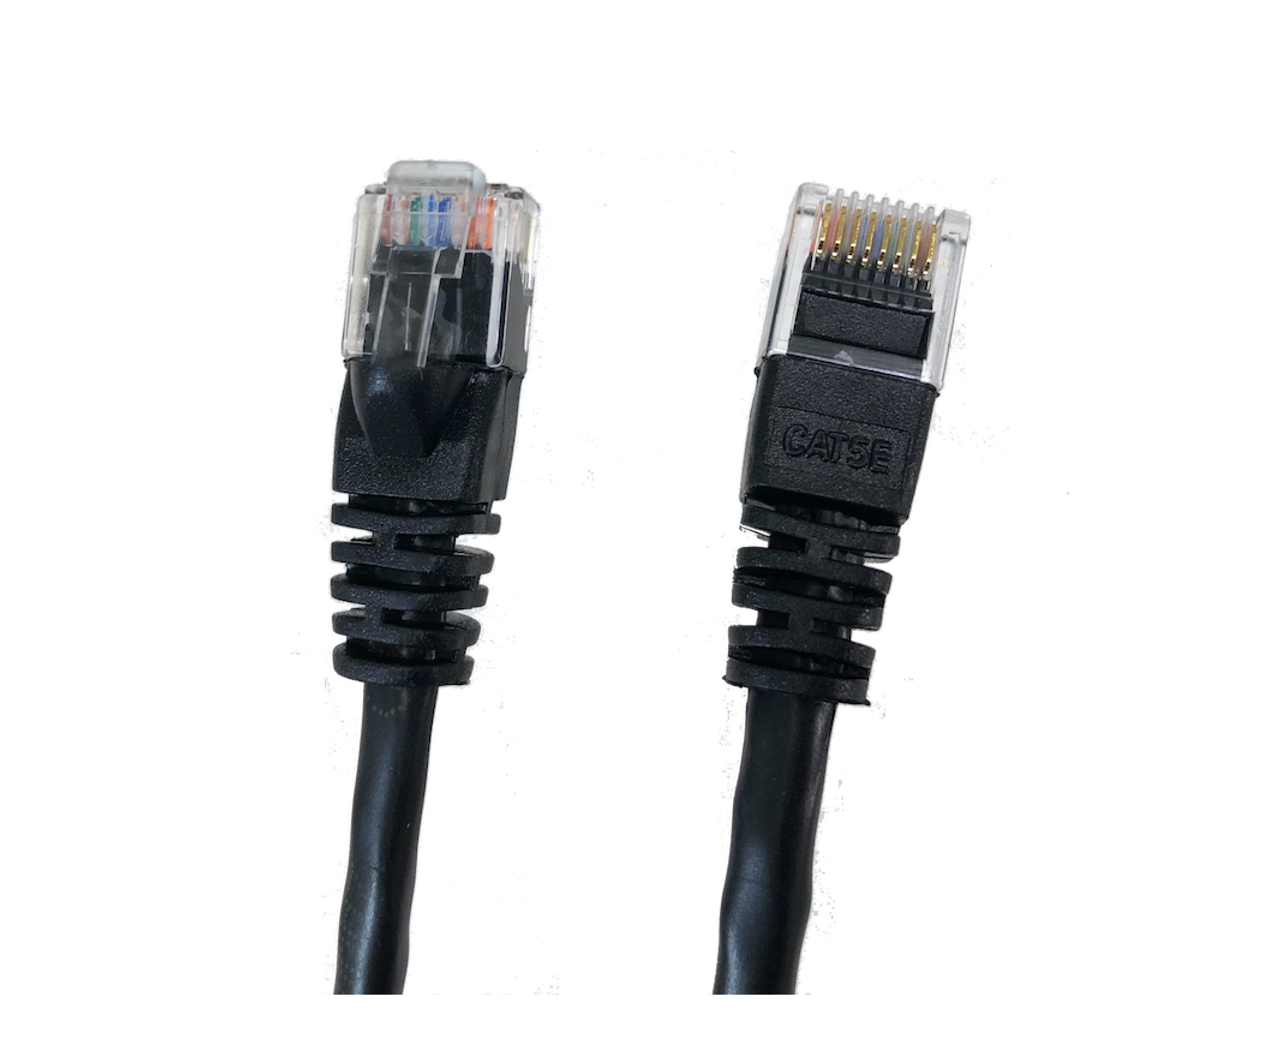 Category 5E UTP RJ45 Patch Cable Black - 7 ft